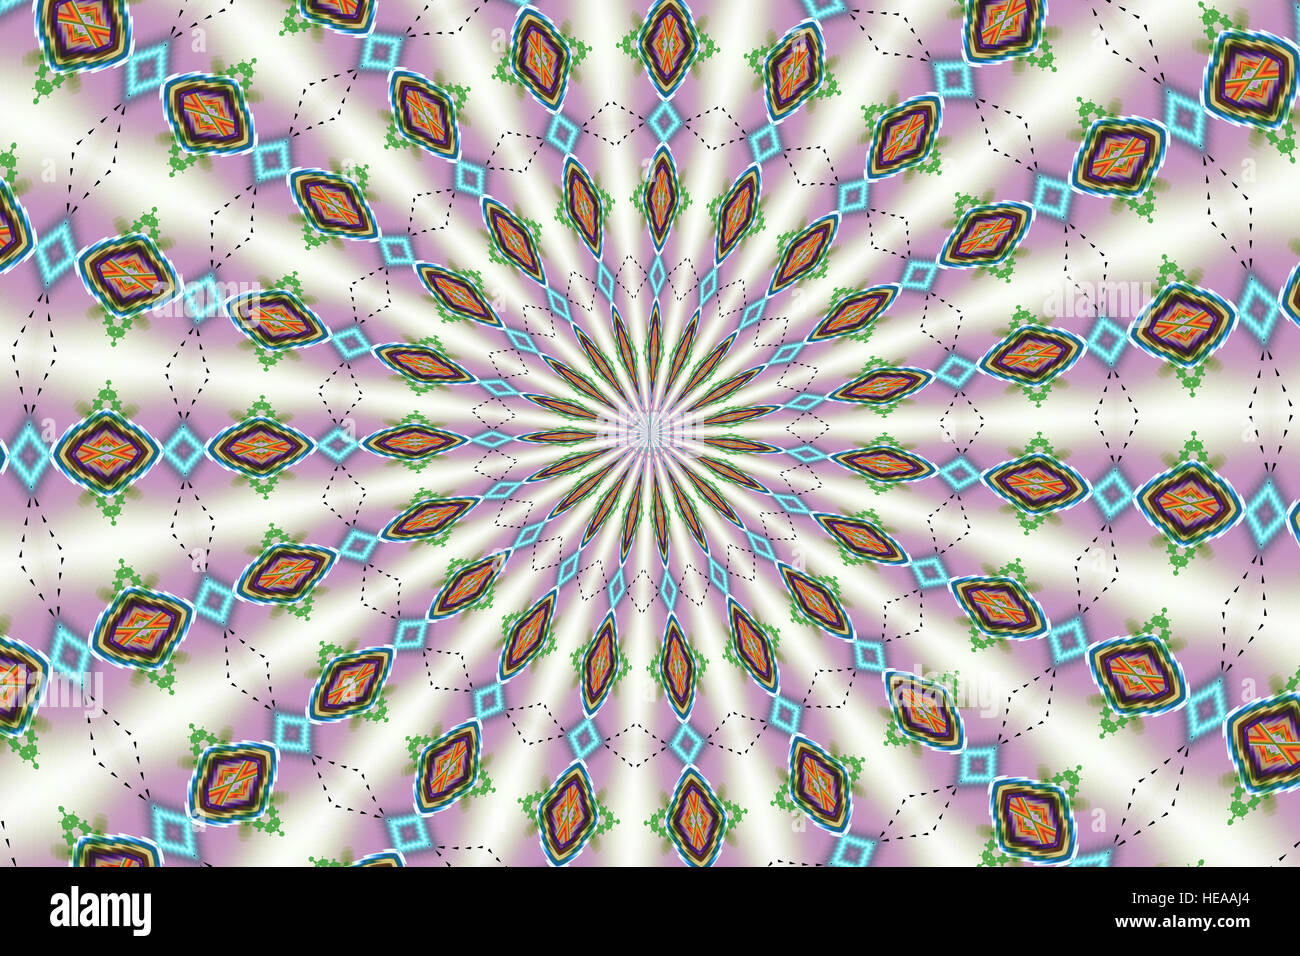 Digitale Kunst - Kaleidoskop - Illustration Stockbild